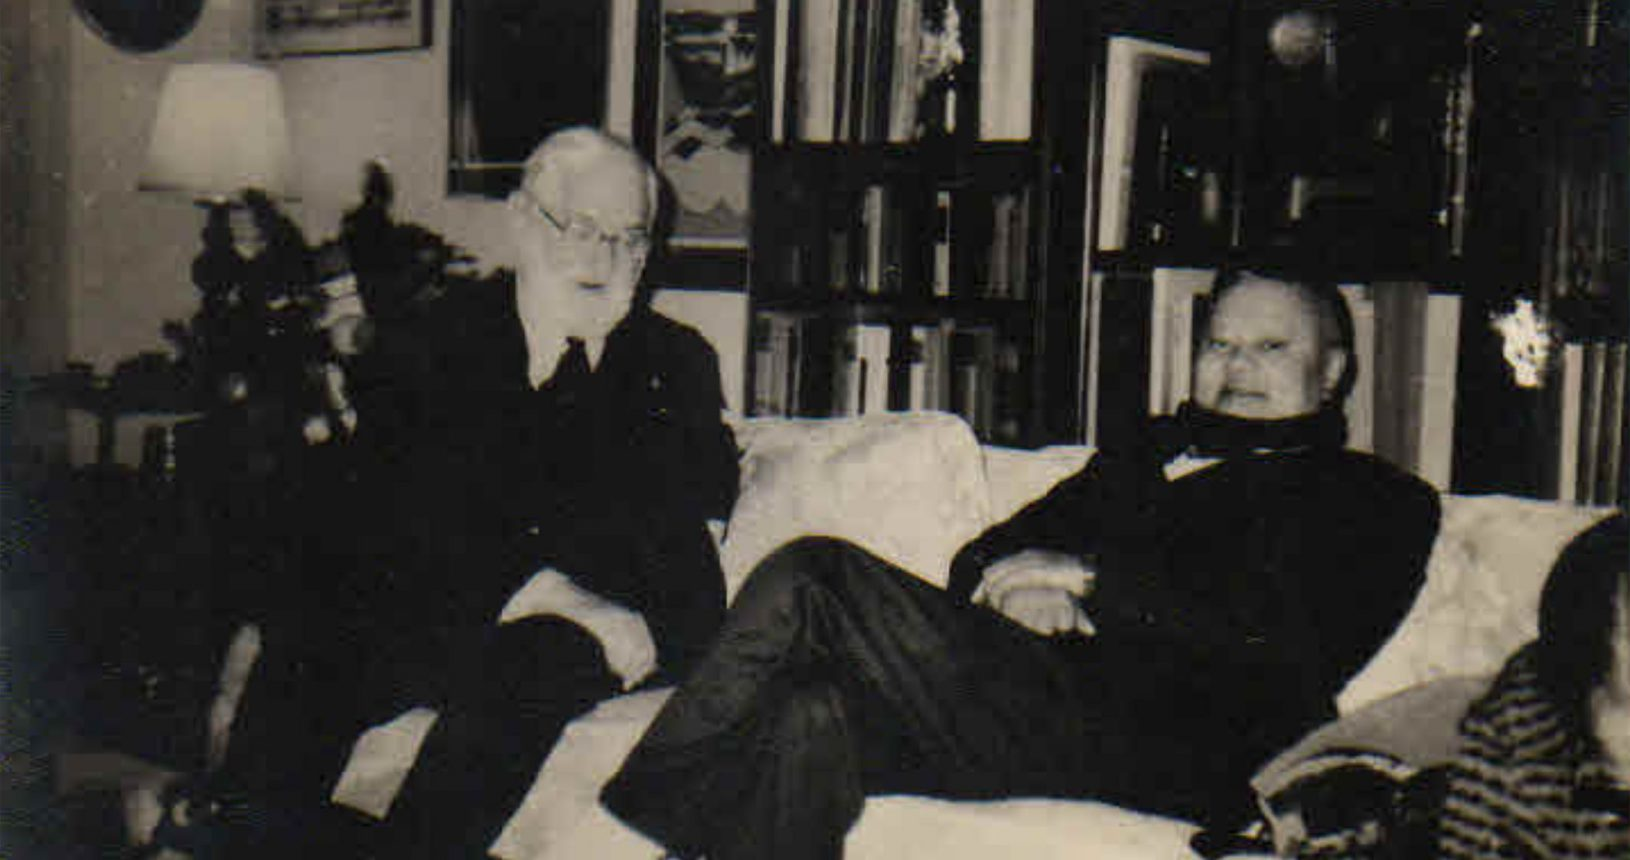 Mr. C. C. Bhagat with Prof. A. B. Sabin Pictured in Washington/USA on 29/12/82